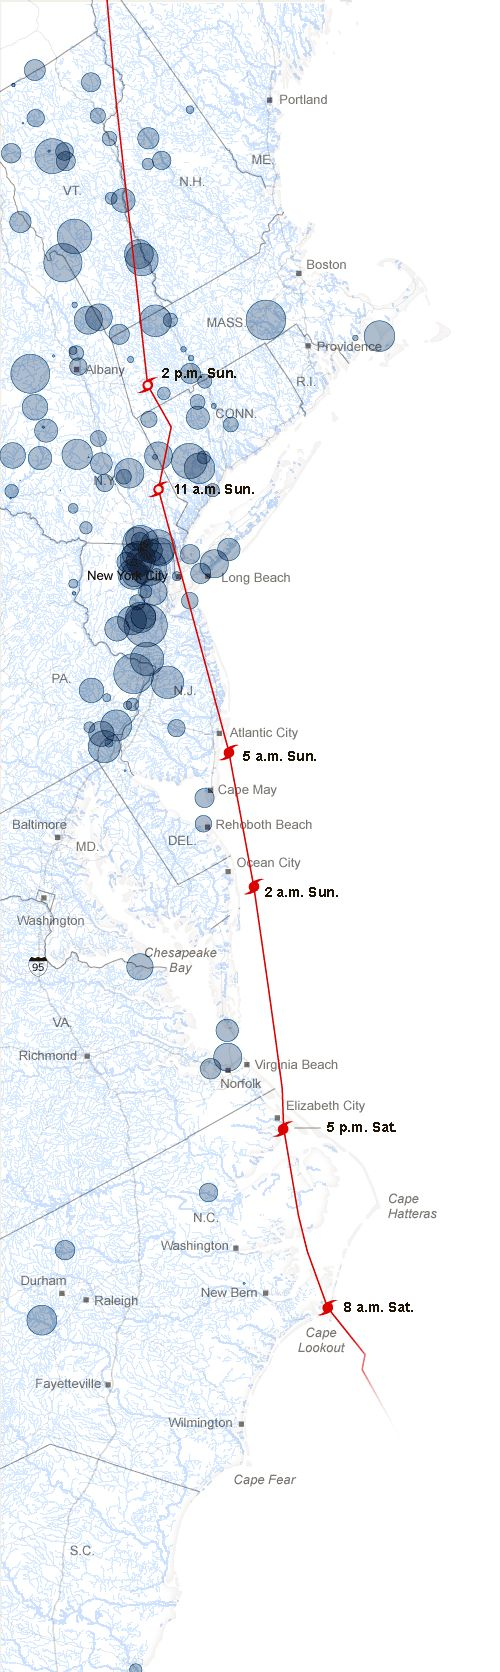 Flooding, Power Failures, Rainfall and Damage From Hurricane Irene (NYTimes, via @albertocairo)